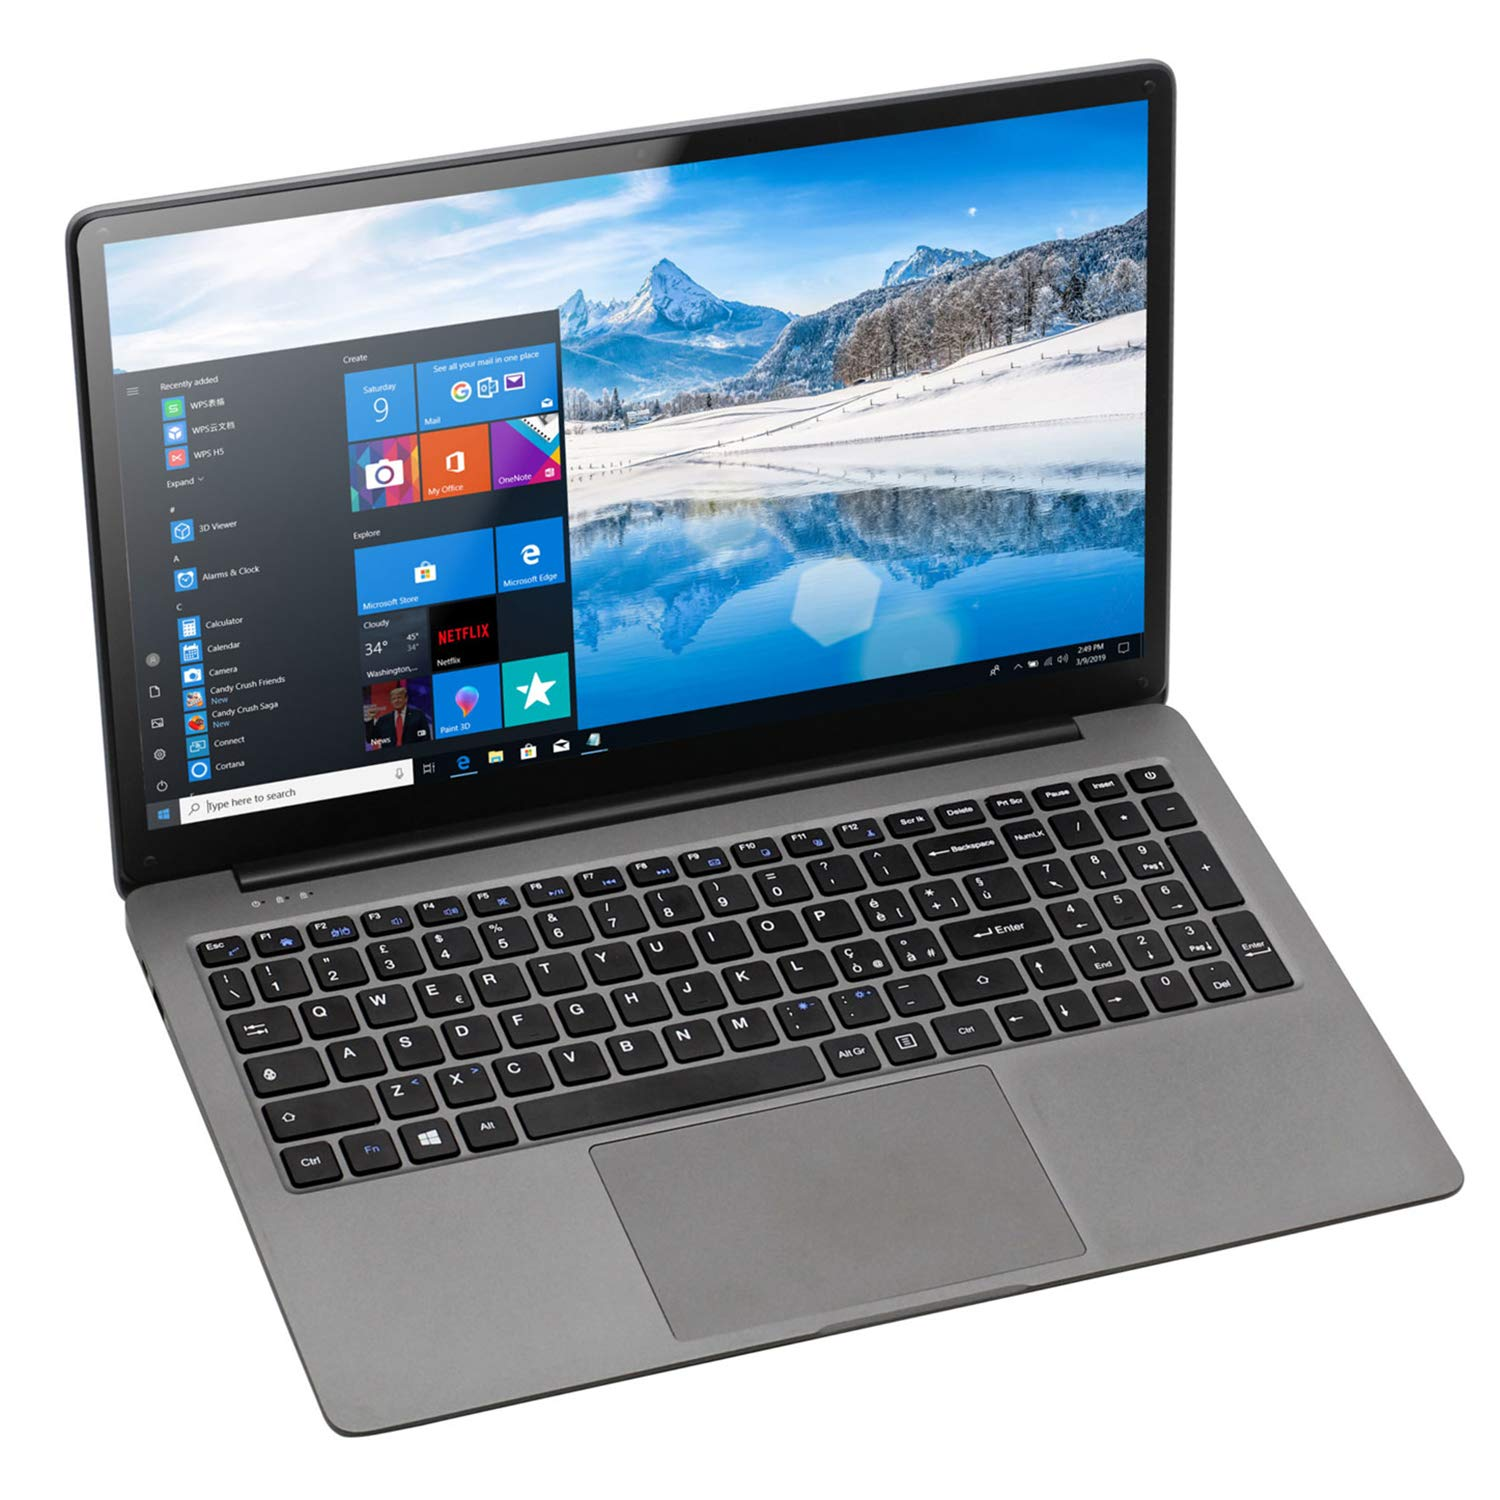 Laptop 15,6 Zoll Windows 10 Notebook - Winnovo KenBook Intel Celeron N3350, 6GB RAM + 1TB HDD, Full-HD, RJ-45, Bluetooth, USB 3.0, Micro HDMI, WLAN, 10.000MAh Akku, 64 Bit (Silber Grau)